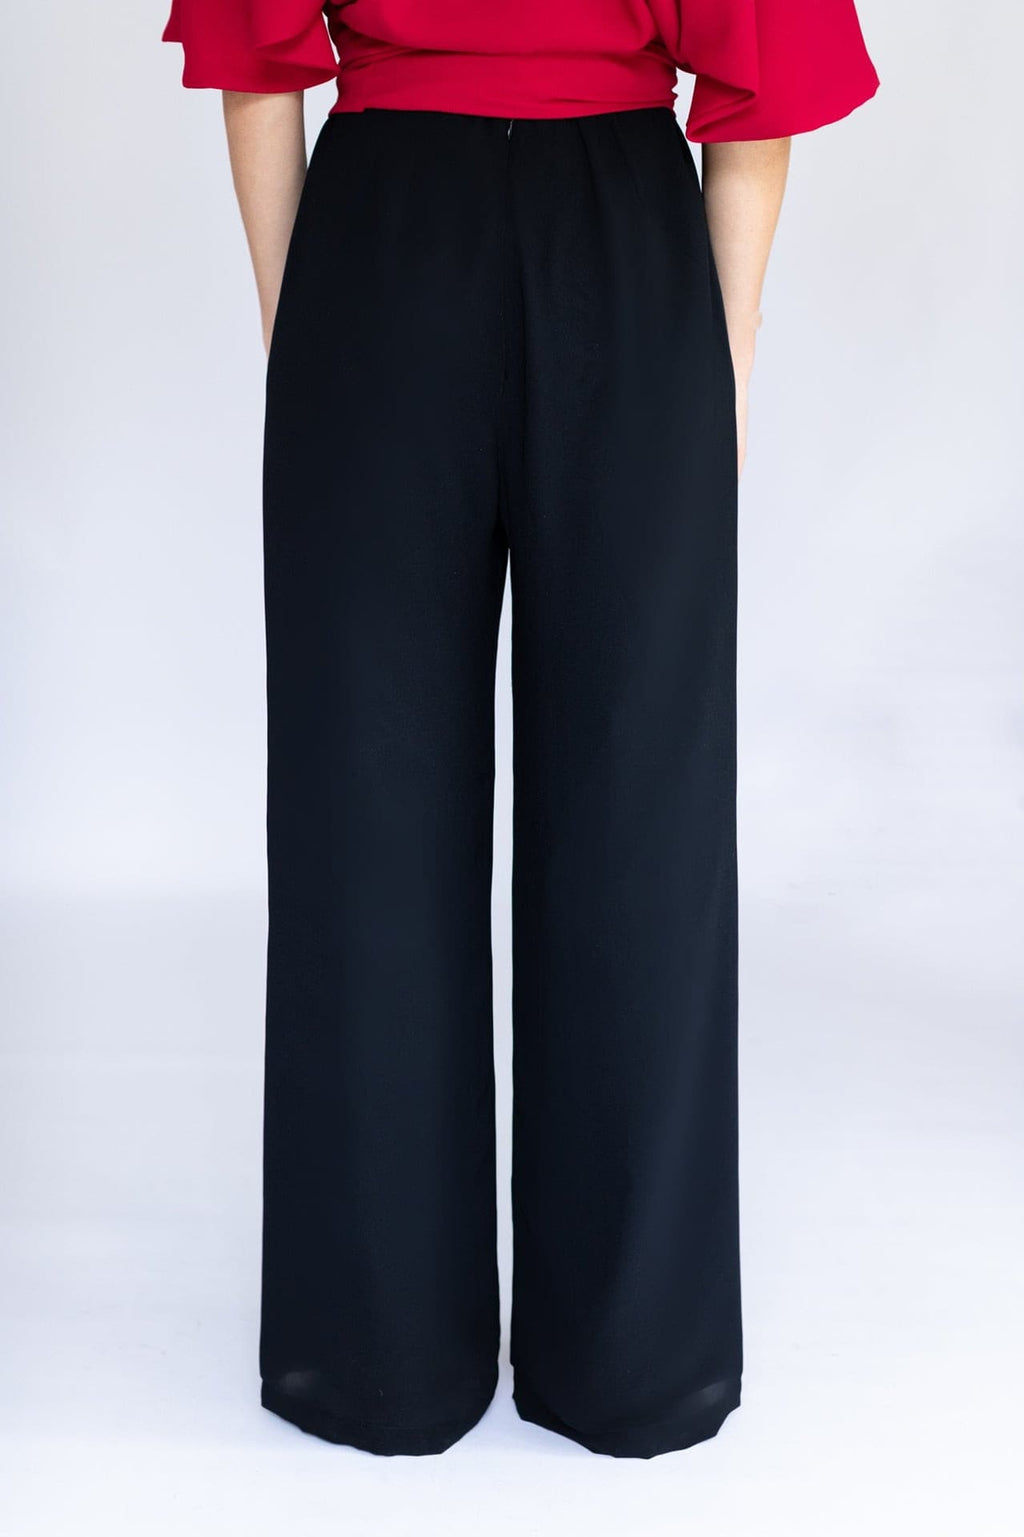 Black Chiffon High waisted Pants Back